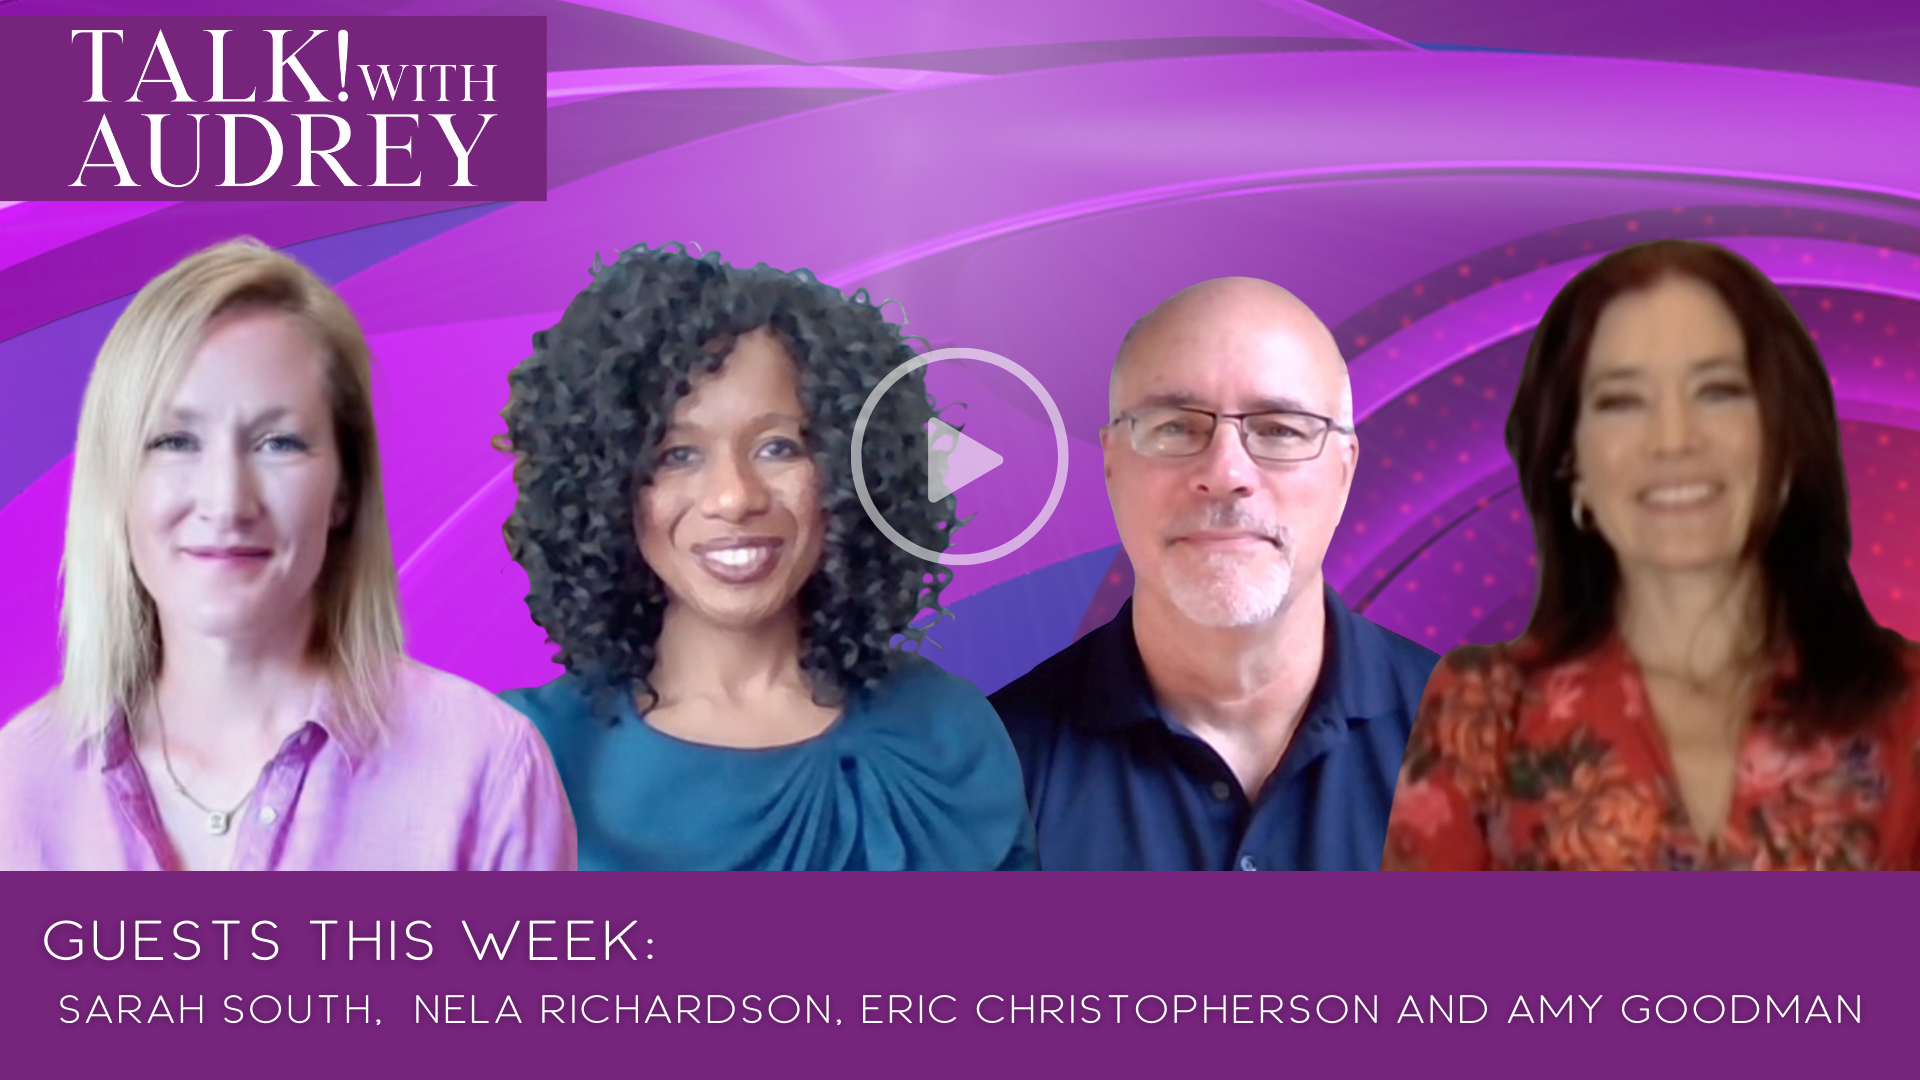 This Week October 2-4, 2020 on TALK! with AUDREY